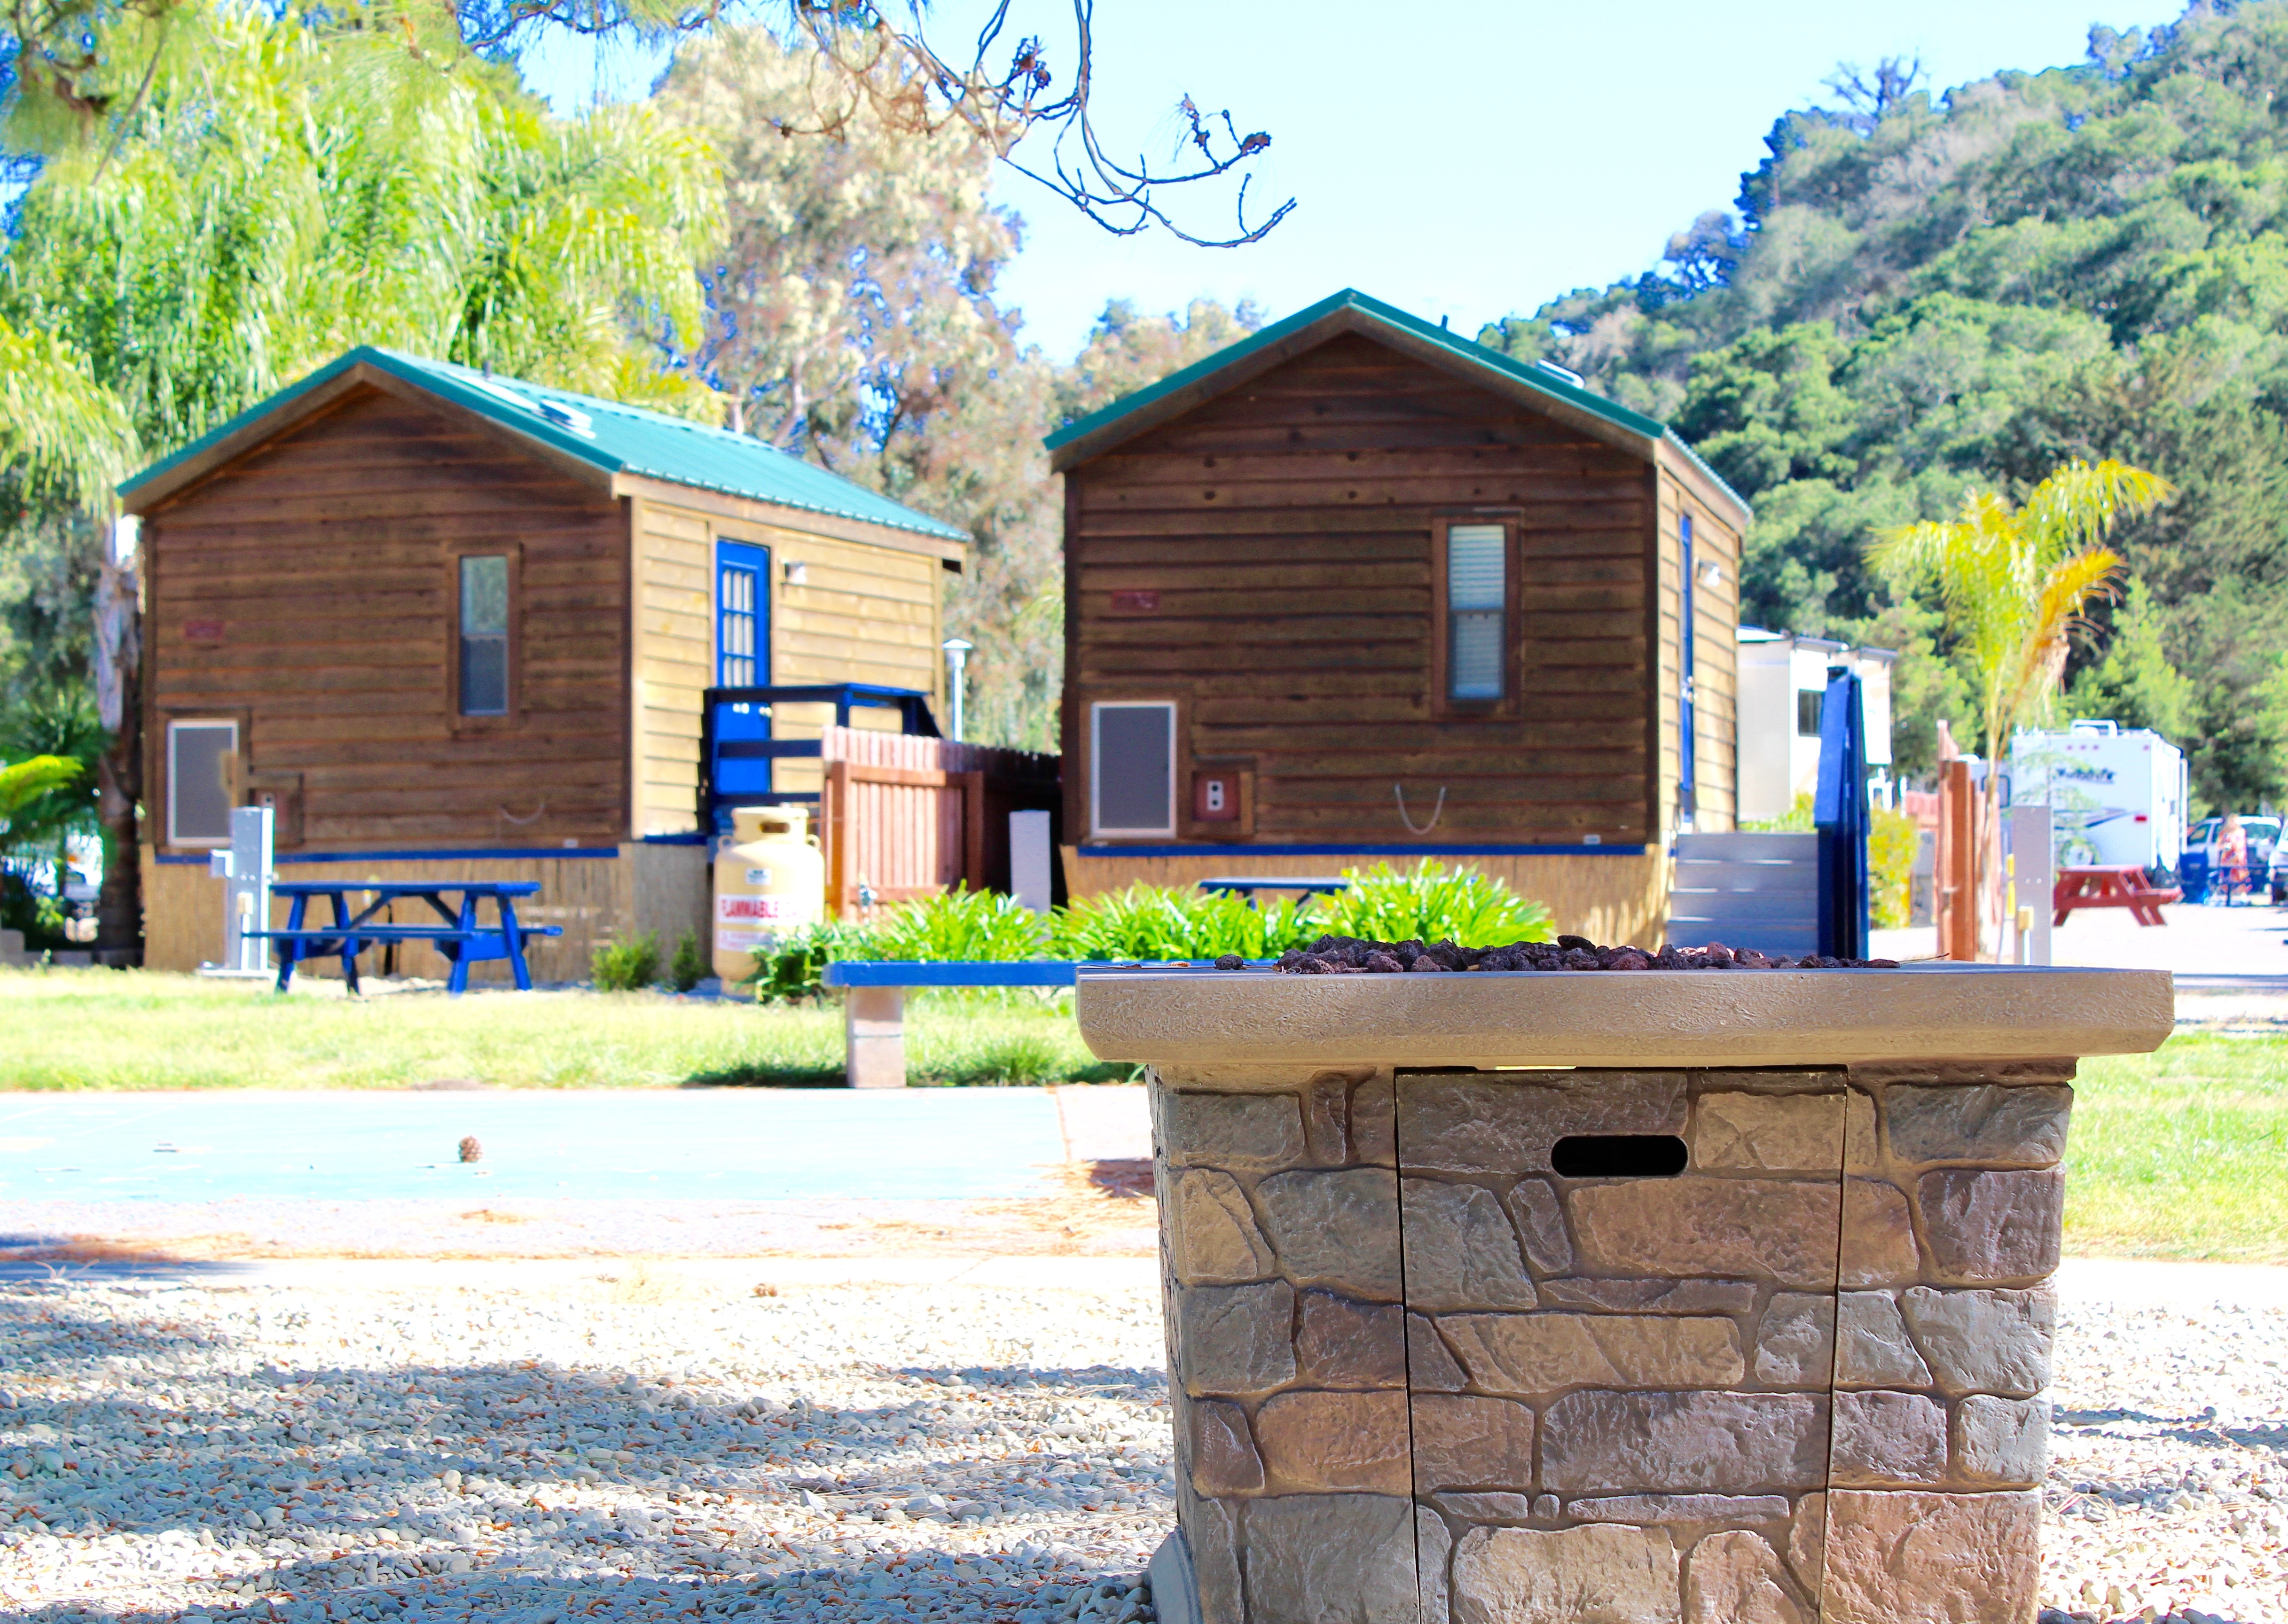 Full hookup campgrounds near pismo beach